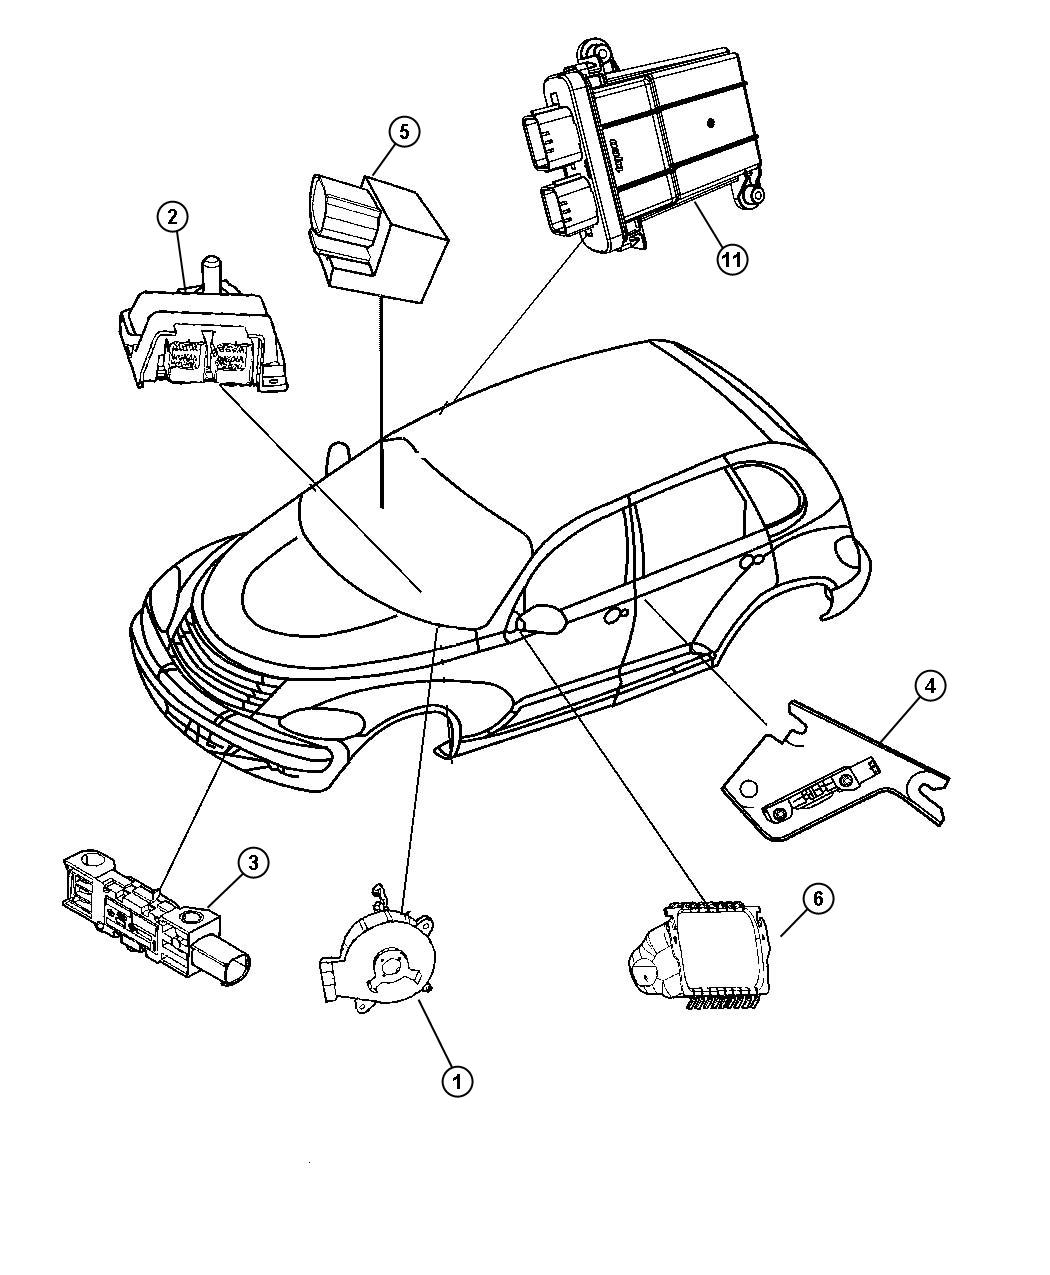 Showassembly besides 2005 Chrysler Town And Country Pcm Location moreover RepairGuideContent also Toyota Rav4 Sd Control Wiring Diagrams furthermore 2003 Pt Cruiser Fuse Box Diagram. on pt cruiser wiper control